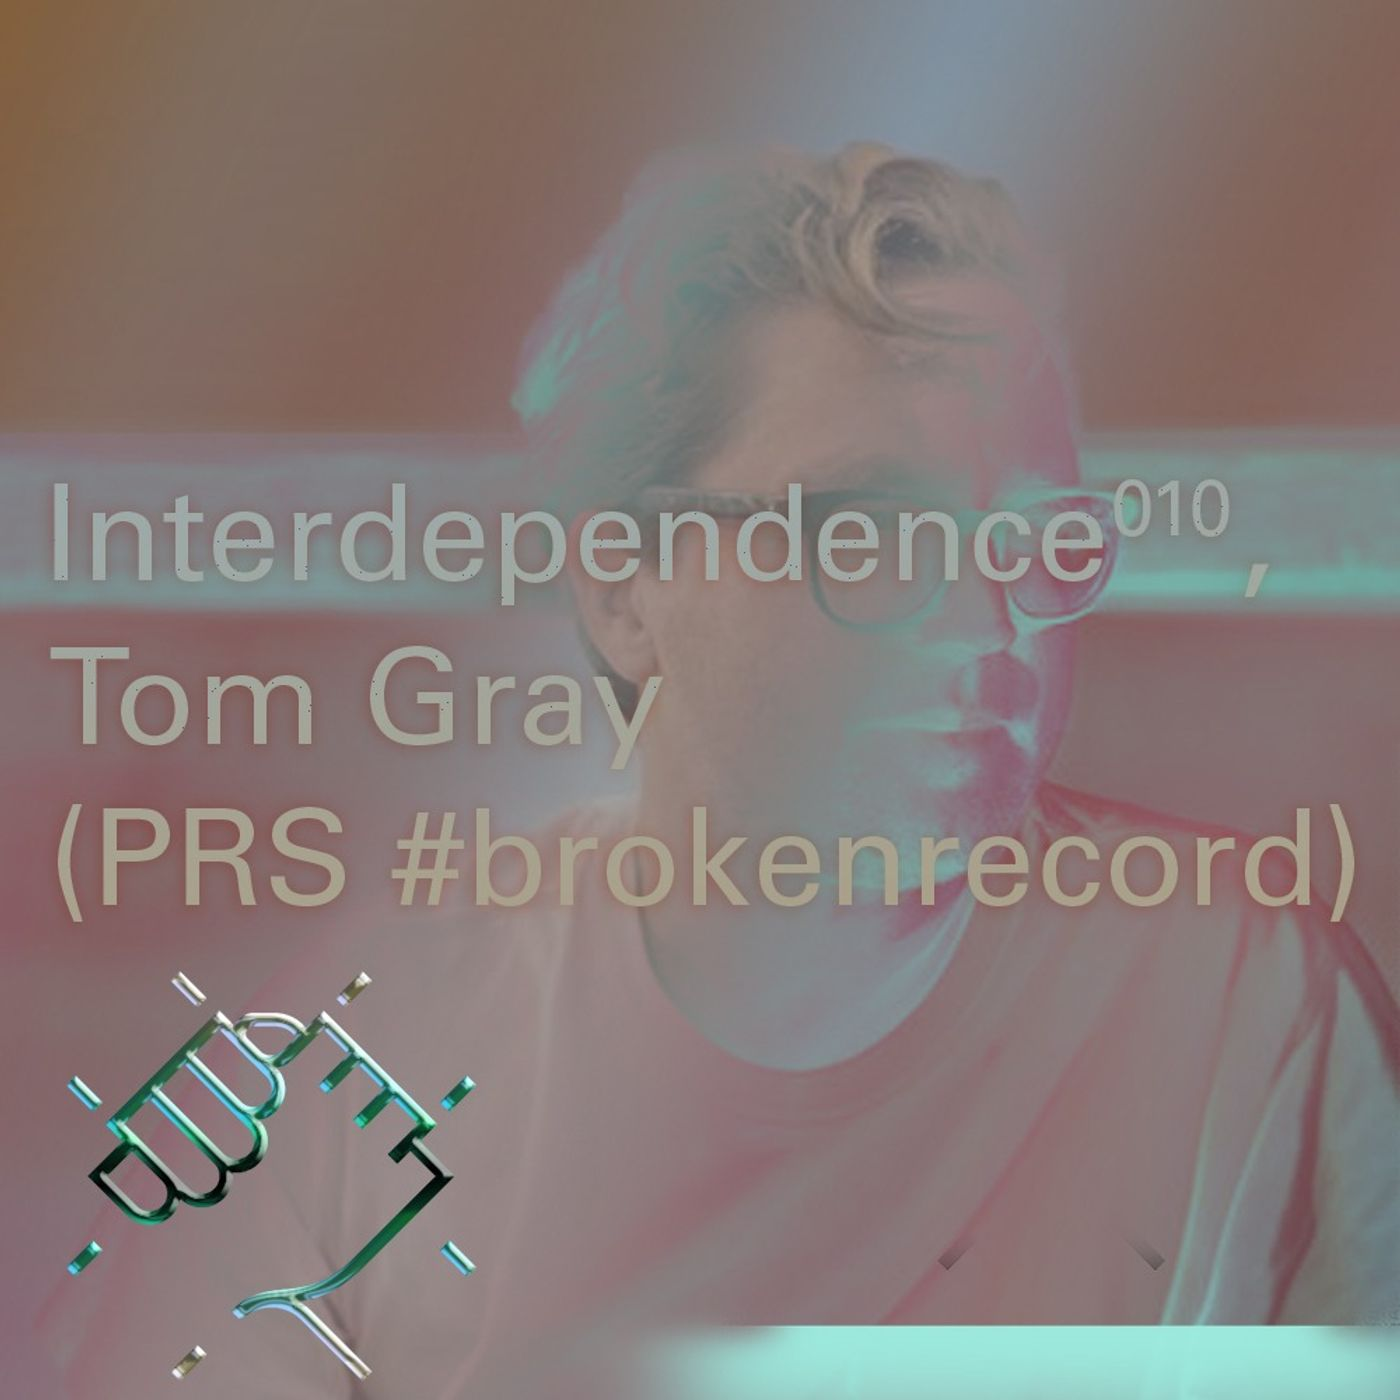 Interdependence 10: Tom Gray (PRS)